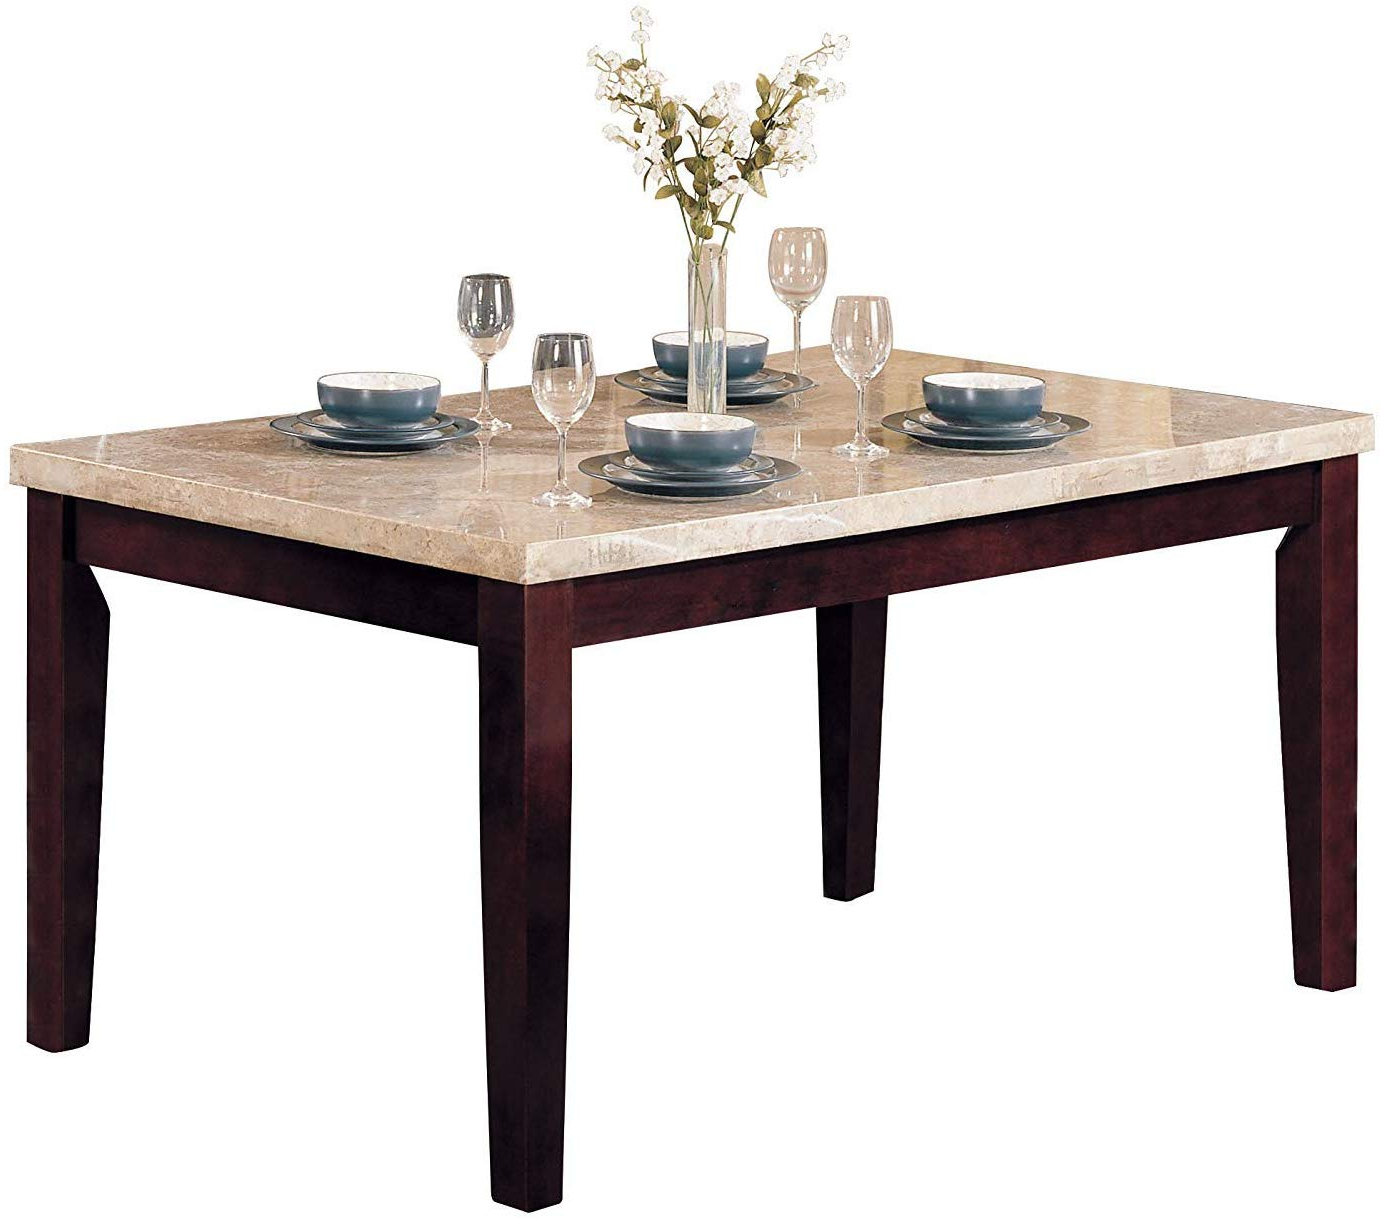 Dining Tables With White Marble Top pertaining to Most Current Acme Britney Walnut Dining Table With White Marble Top